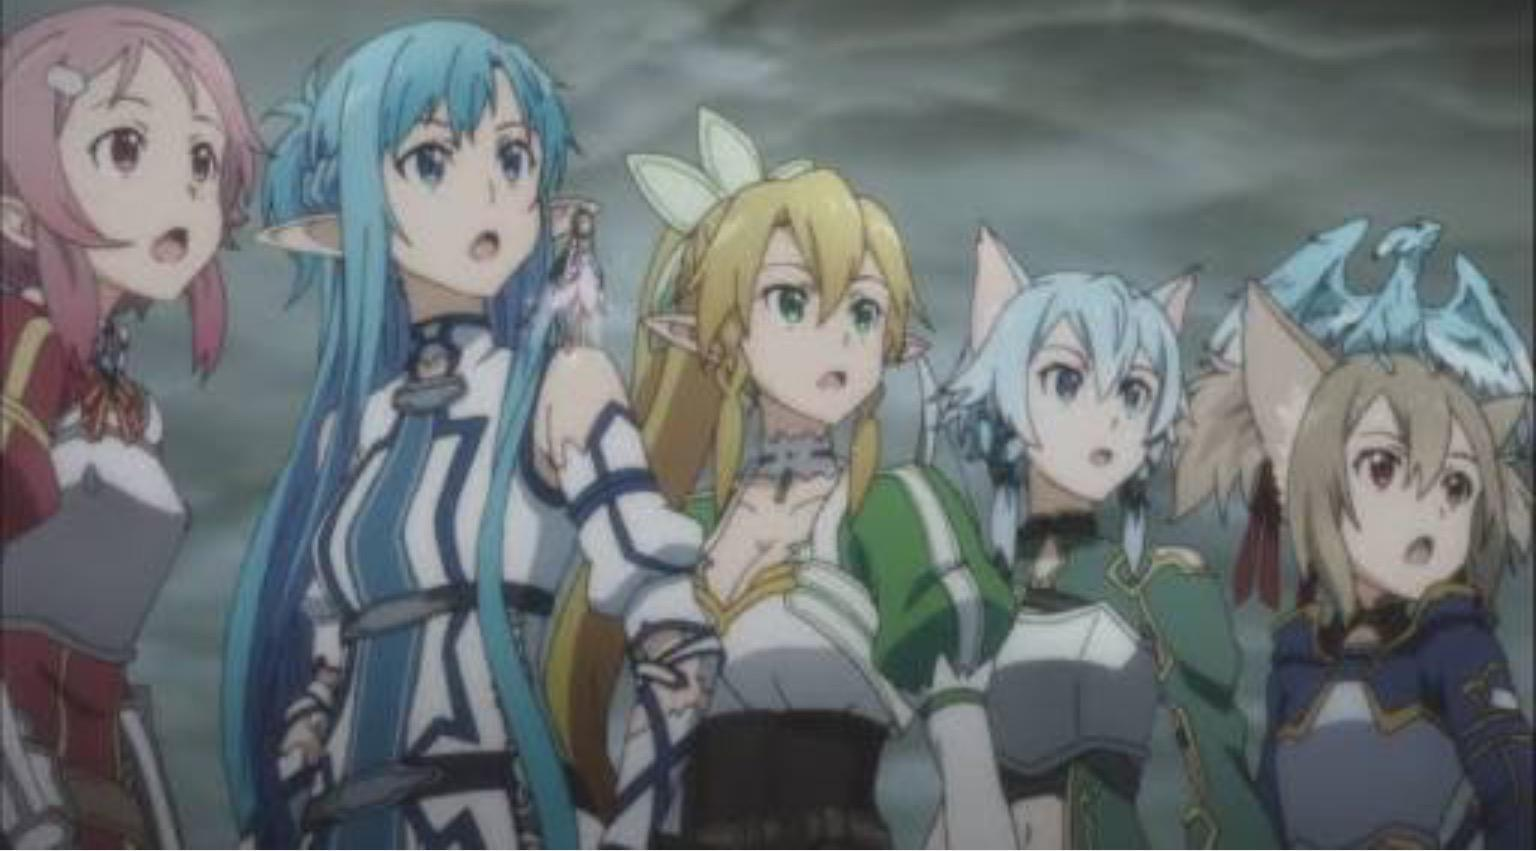 What SAO girl would date you?